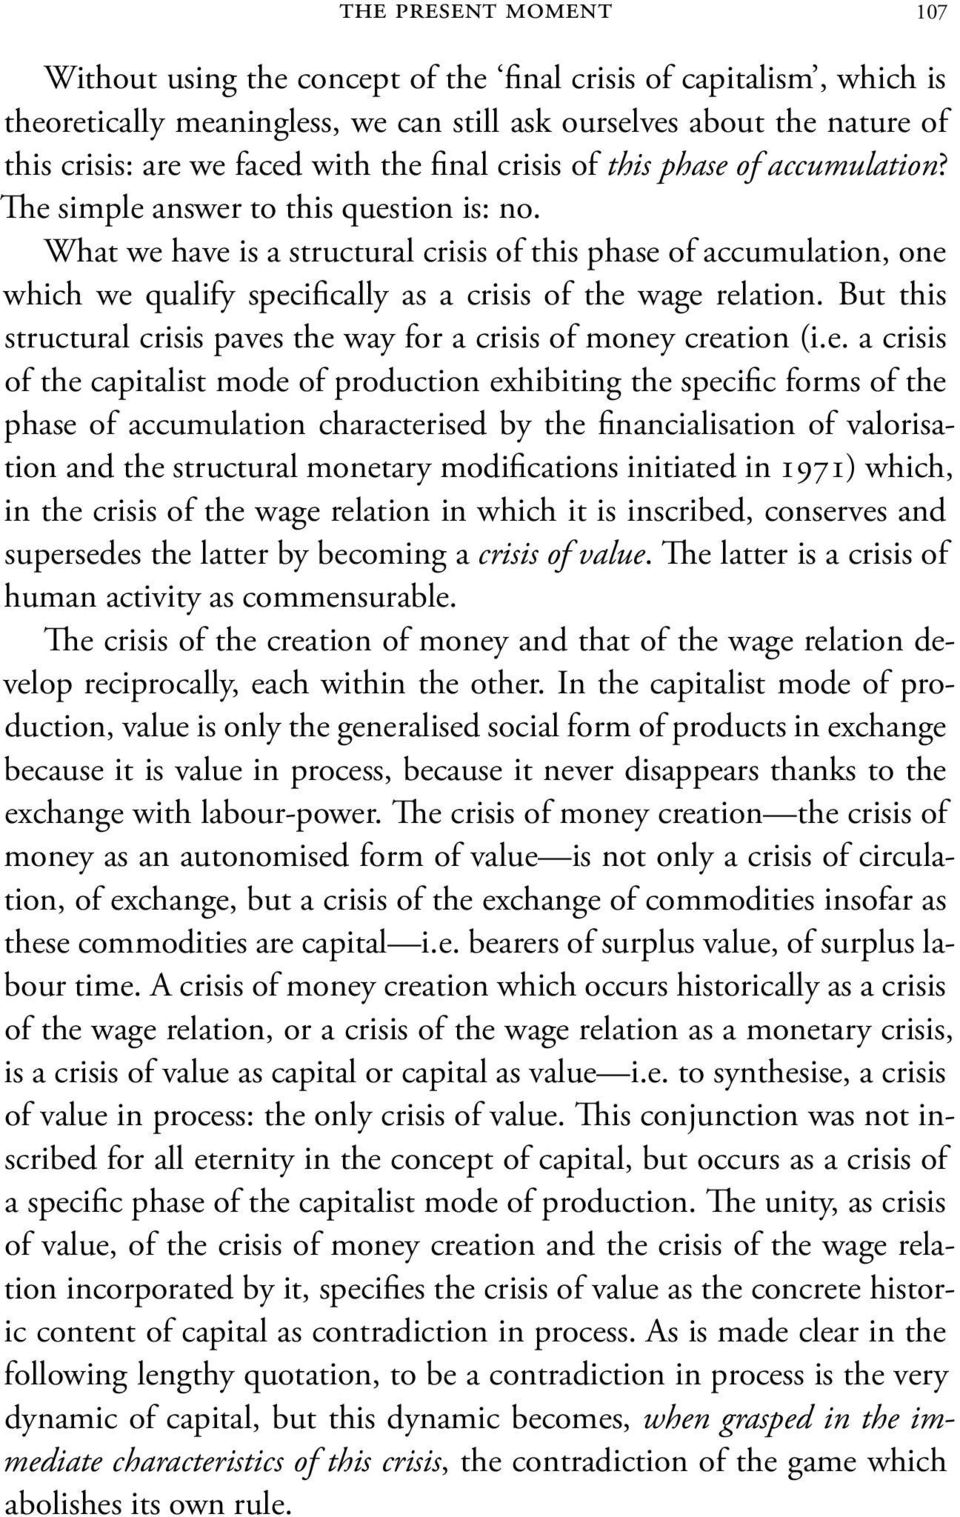 What we have is a structural crisis of this phase of accumulation, one which we qualify specifically as a crisis of the wage relation.